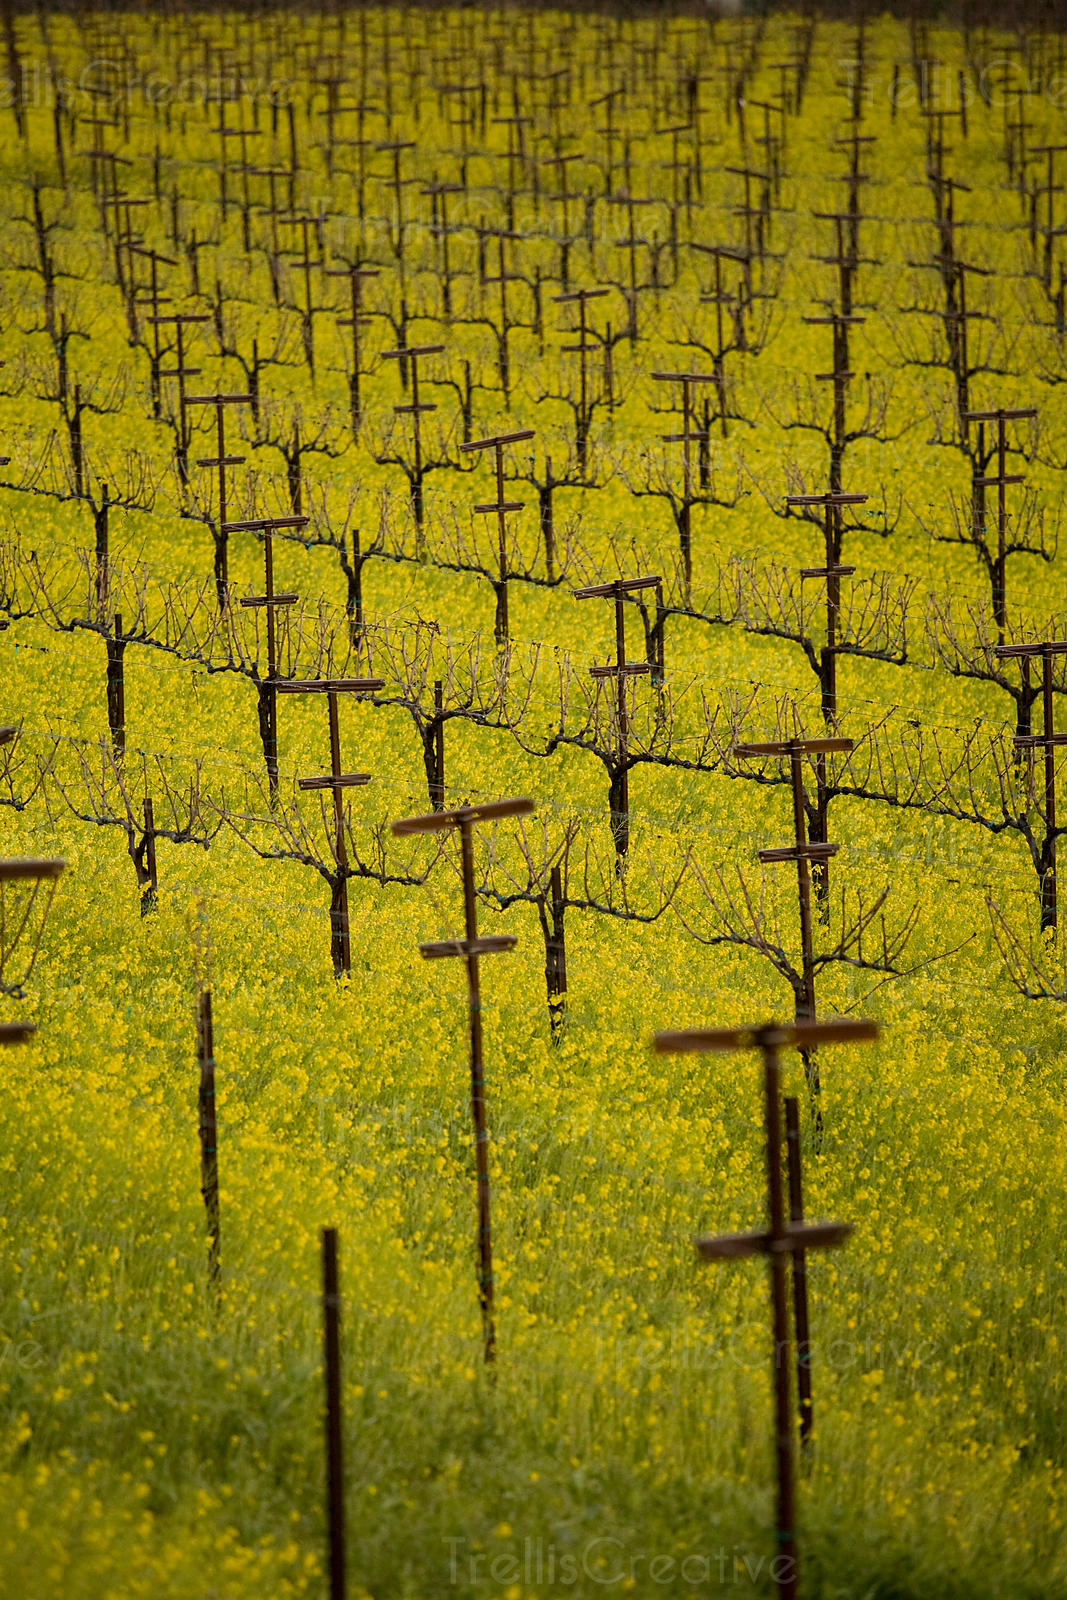 Looking across a field of wild mustard in a Napa Valley vineyard